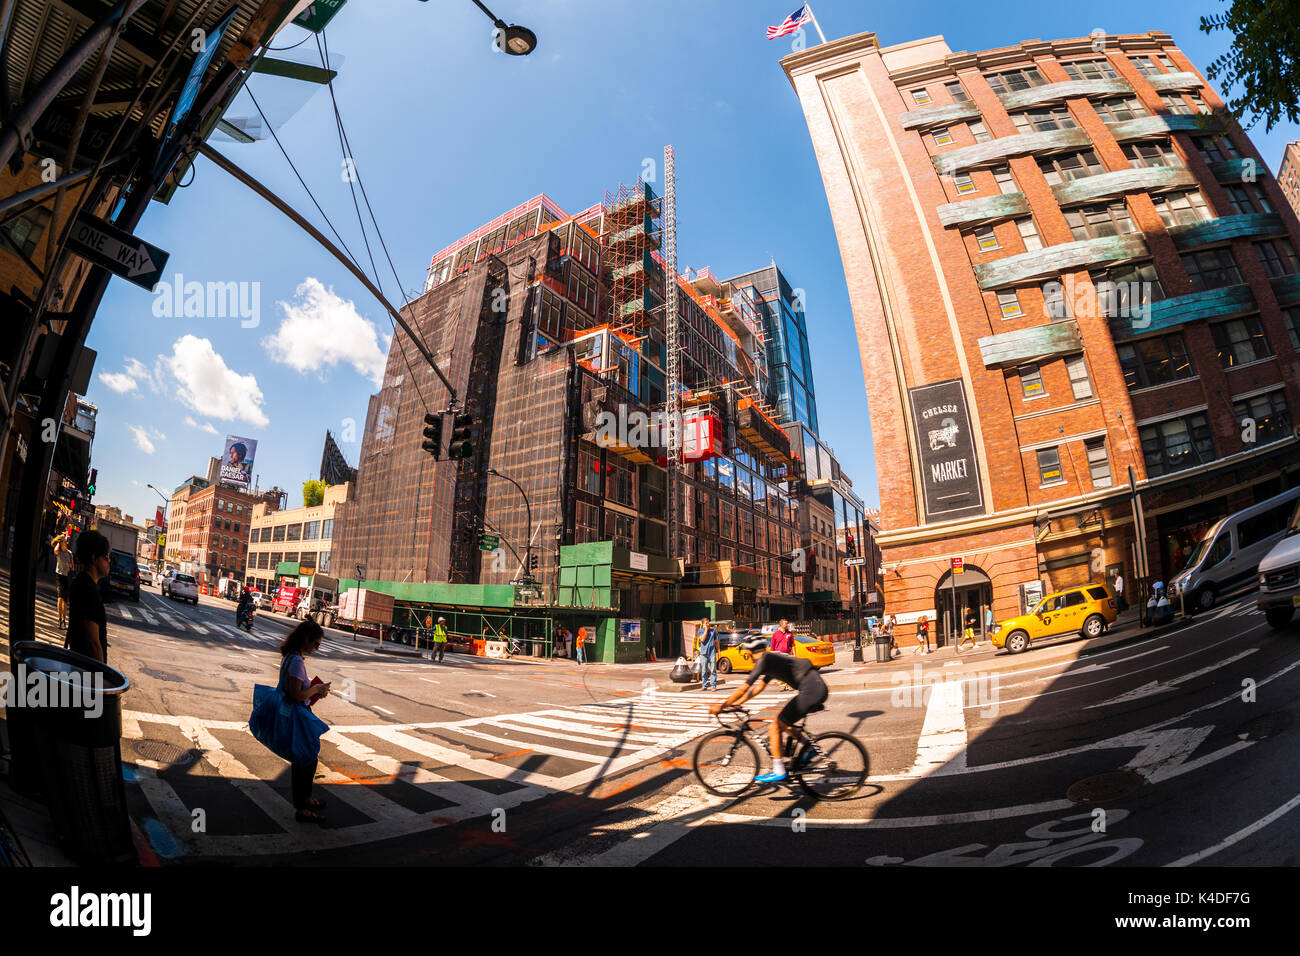 Construction on 61 Ninth Avenue in the Chelsea neighborhood of New York is seen on Friday, August 25, 2017. The office and retail building, designed by noted architect Rafael Vinoly will contain a 20,000 square foot Starbucks Reserve store expected to open sometime in 2018.  (© Richard B. Levine) - Stock Image